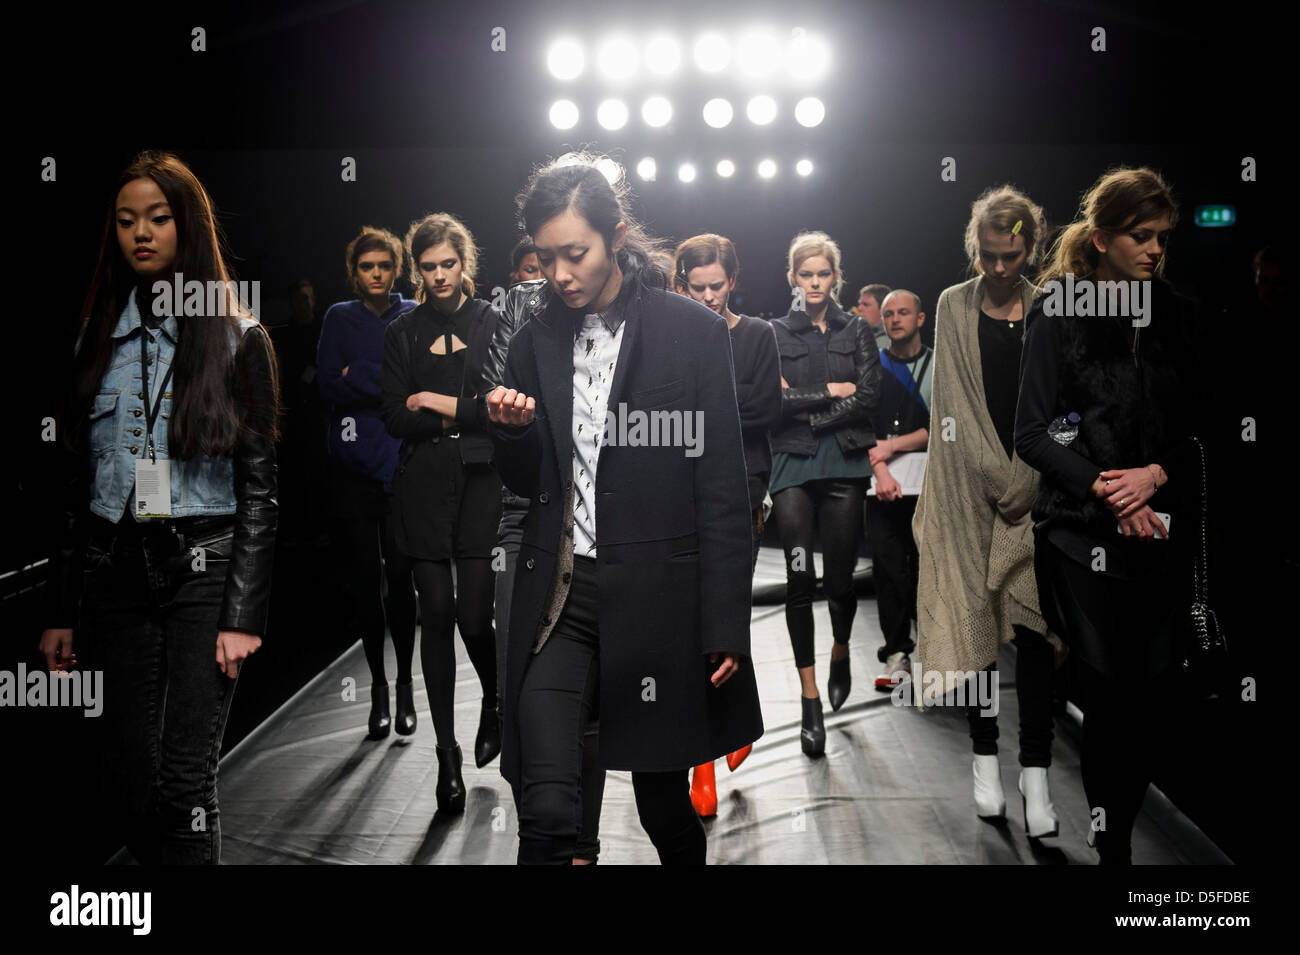 Models prepare ahead of the Zoe Jordan collection during London Fashion Week. - Stock Image